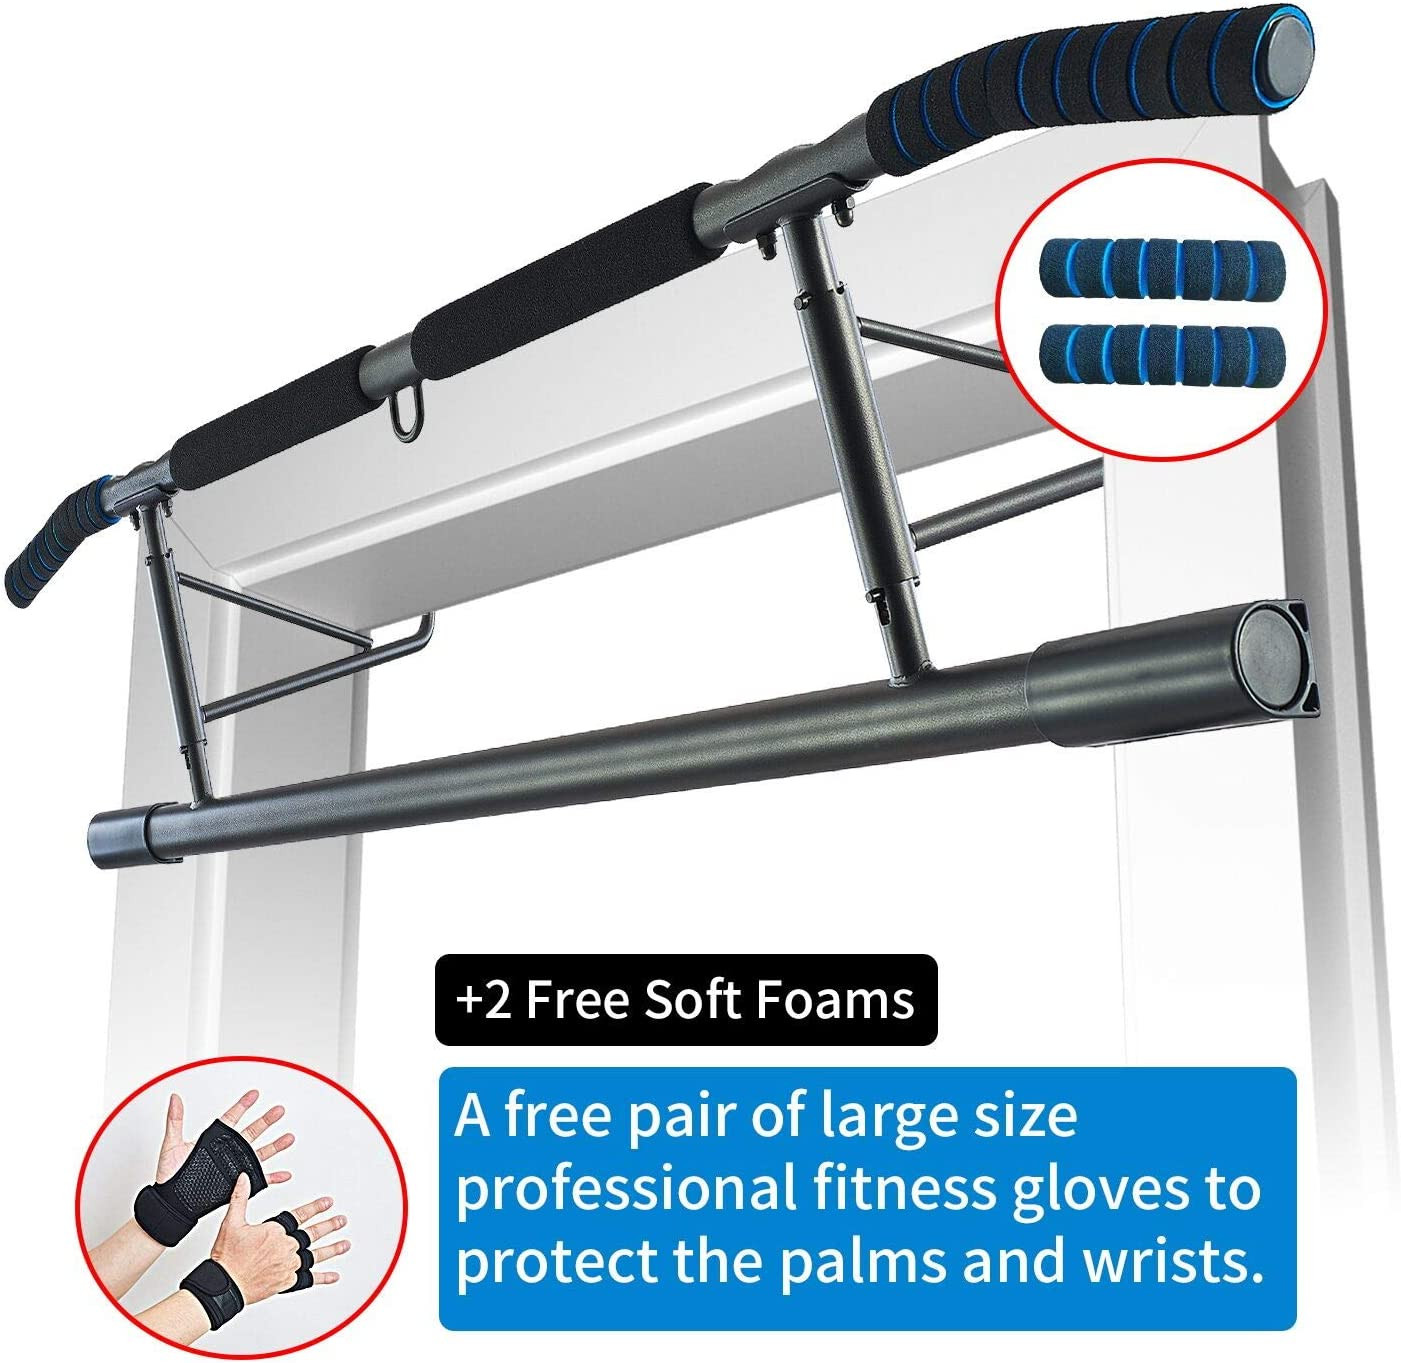 AnrayDiroct Pull Up Bar Chin Up Bar Doorway No Screw, Home Gym Fitness Bar with Wrist Wraps for Men Women